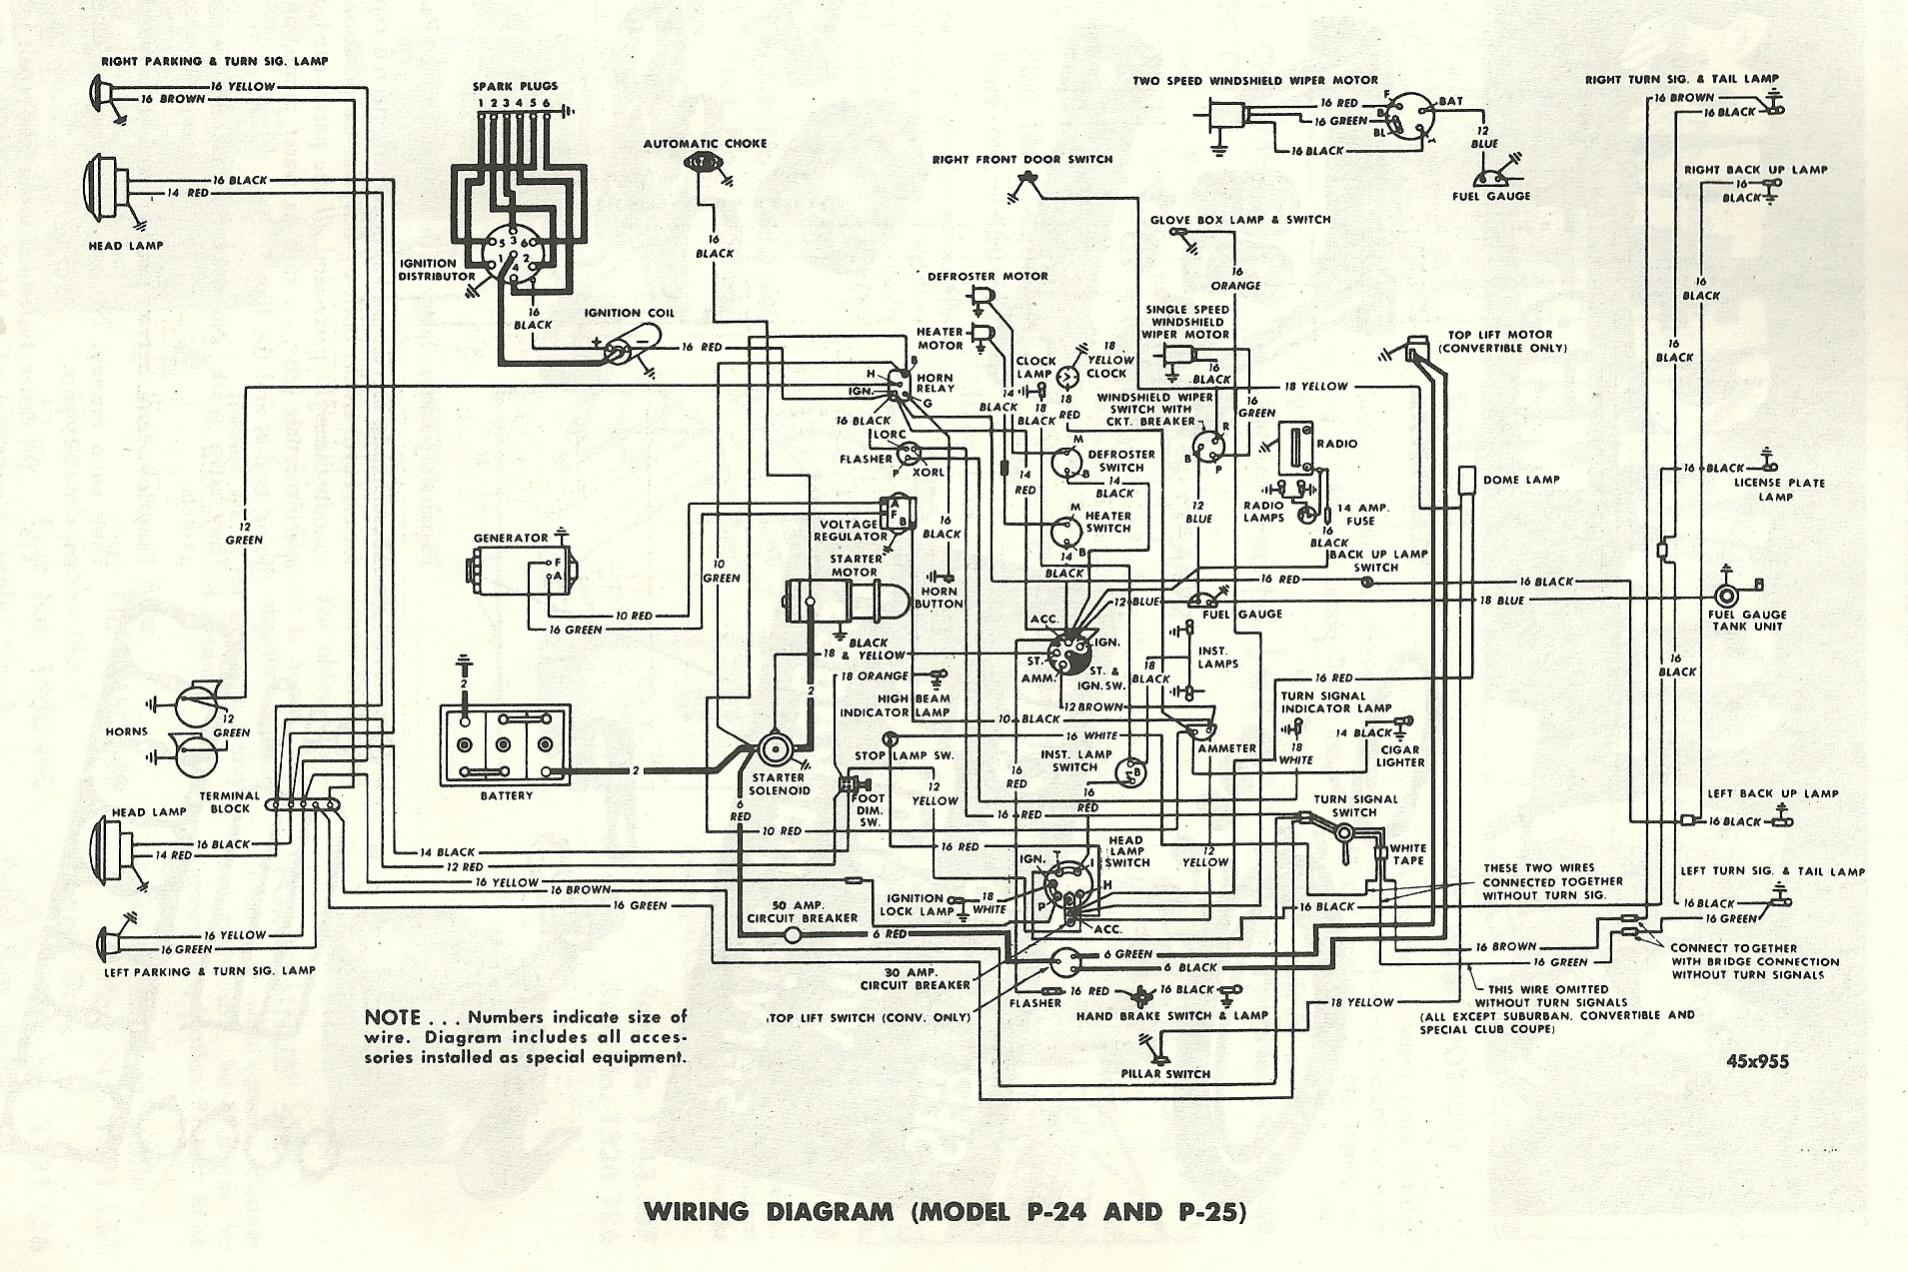 wiring diagram for 1999 plymouth voyager electrical schematic